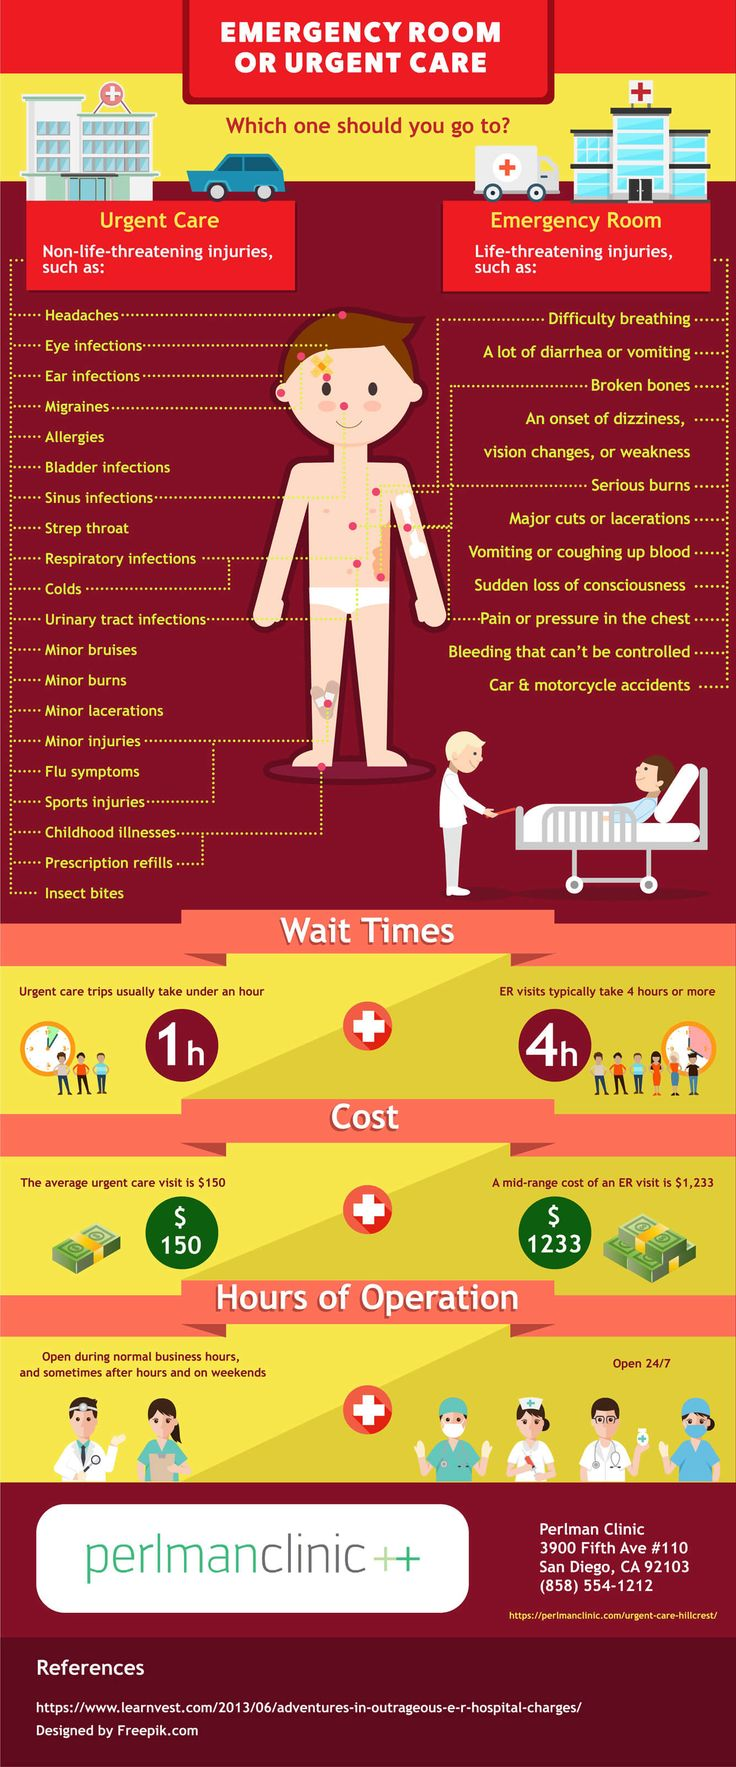 When you have a medical emergency, the last thing that you should think about is where to go for treatment. Although the differences are striking, many people don't know the differences between urgent care clinics and the emergency room, and aren't sure which option to choose in the event of an injury or illness. #infographics